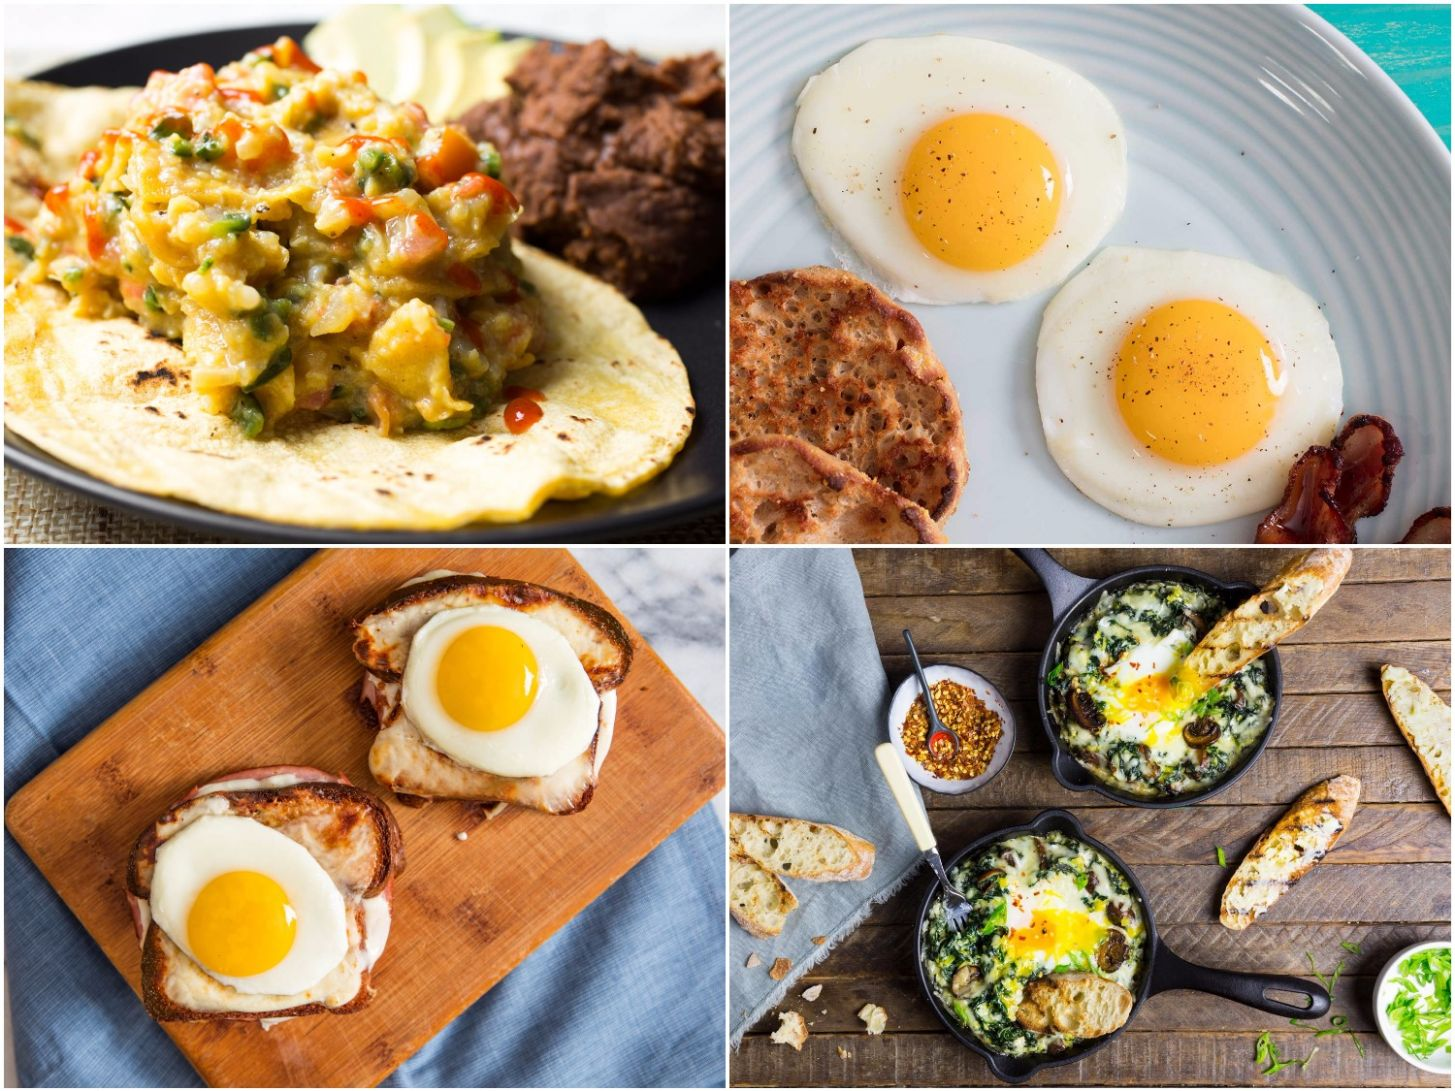 12 Egg Breakfast Recipes to Start Your Day | Serious Eats